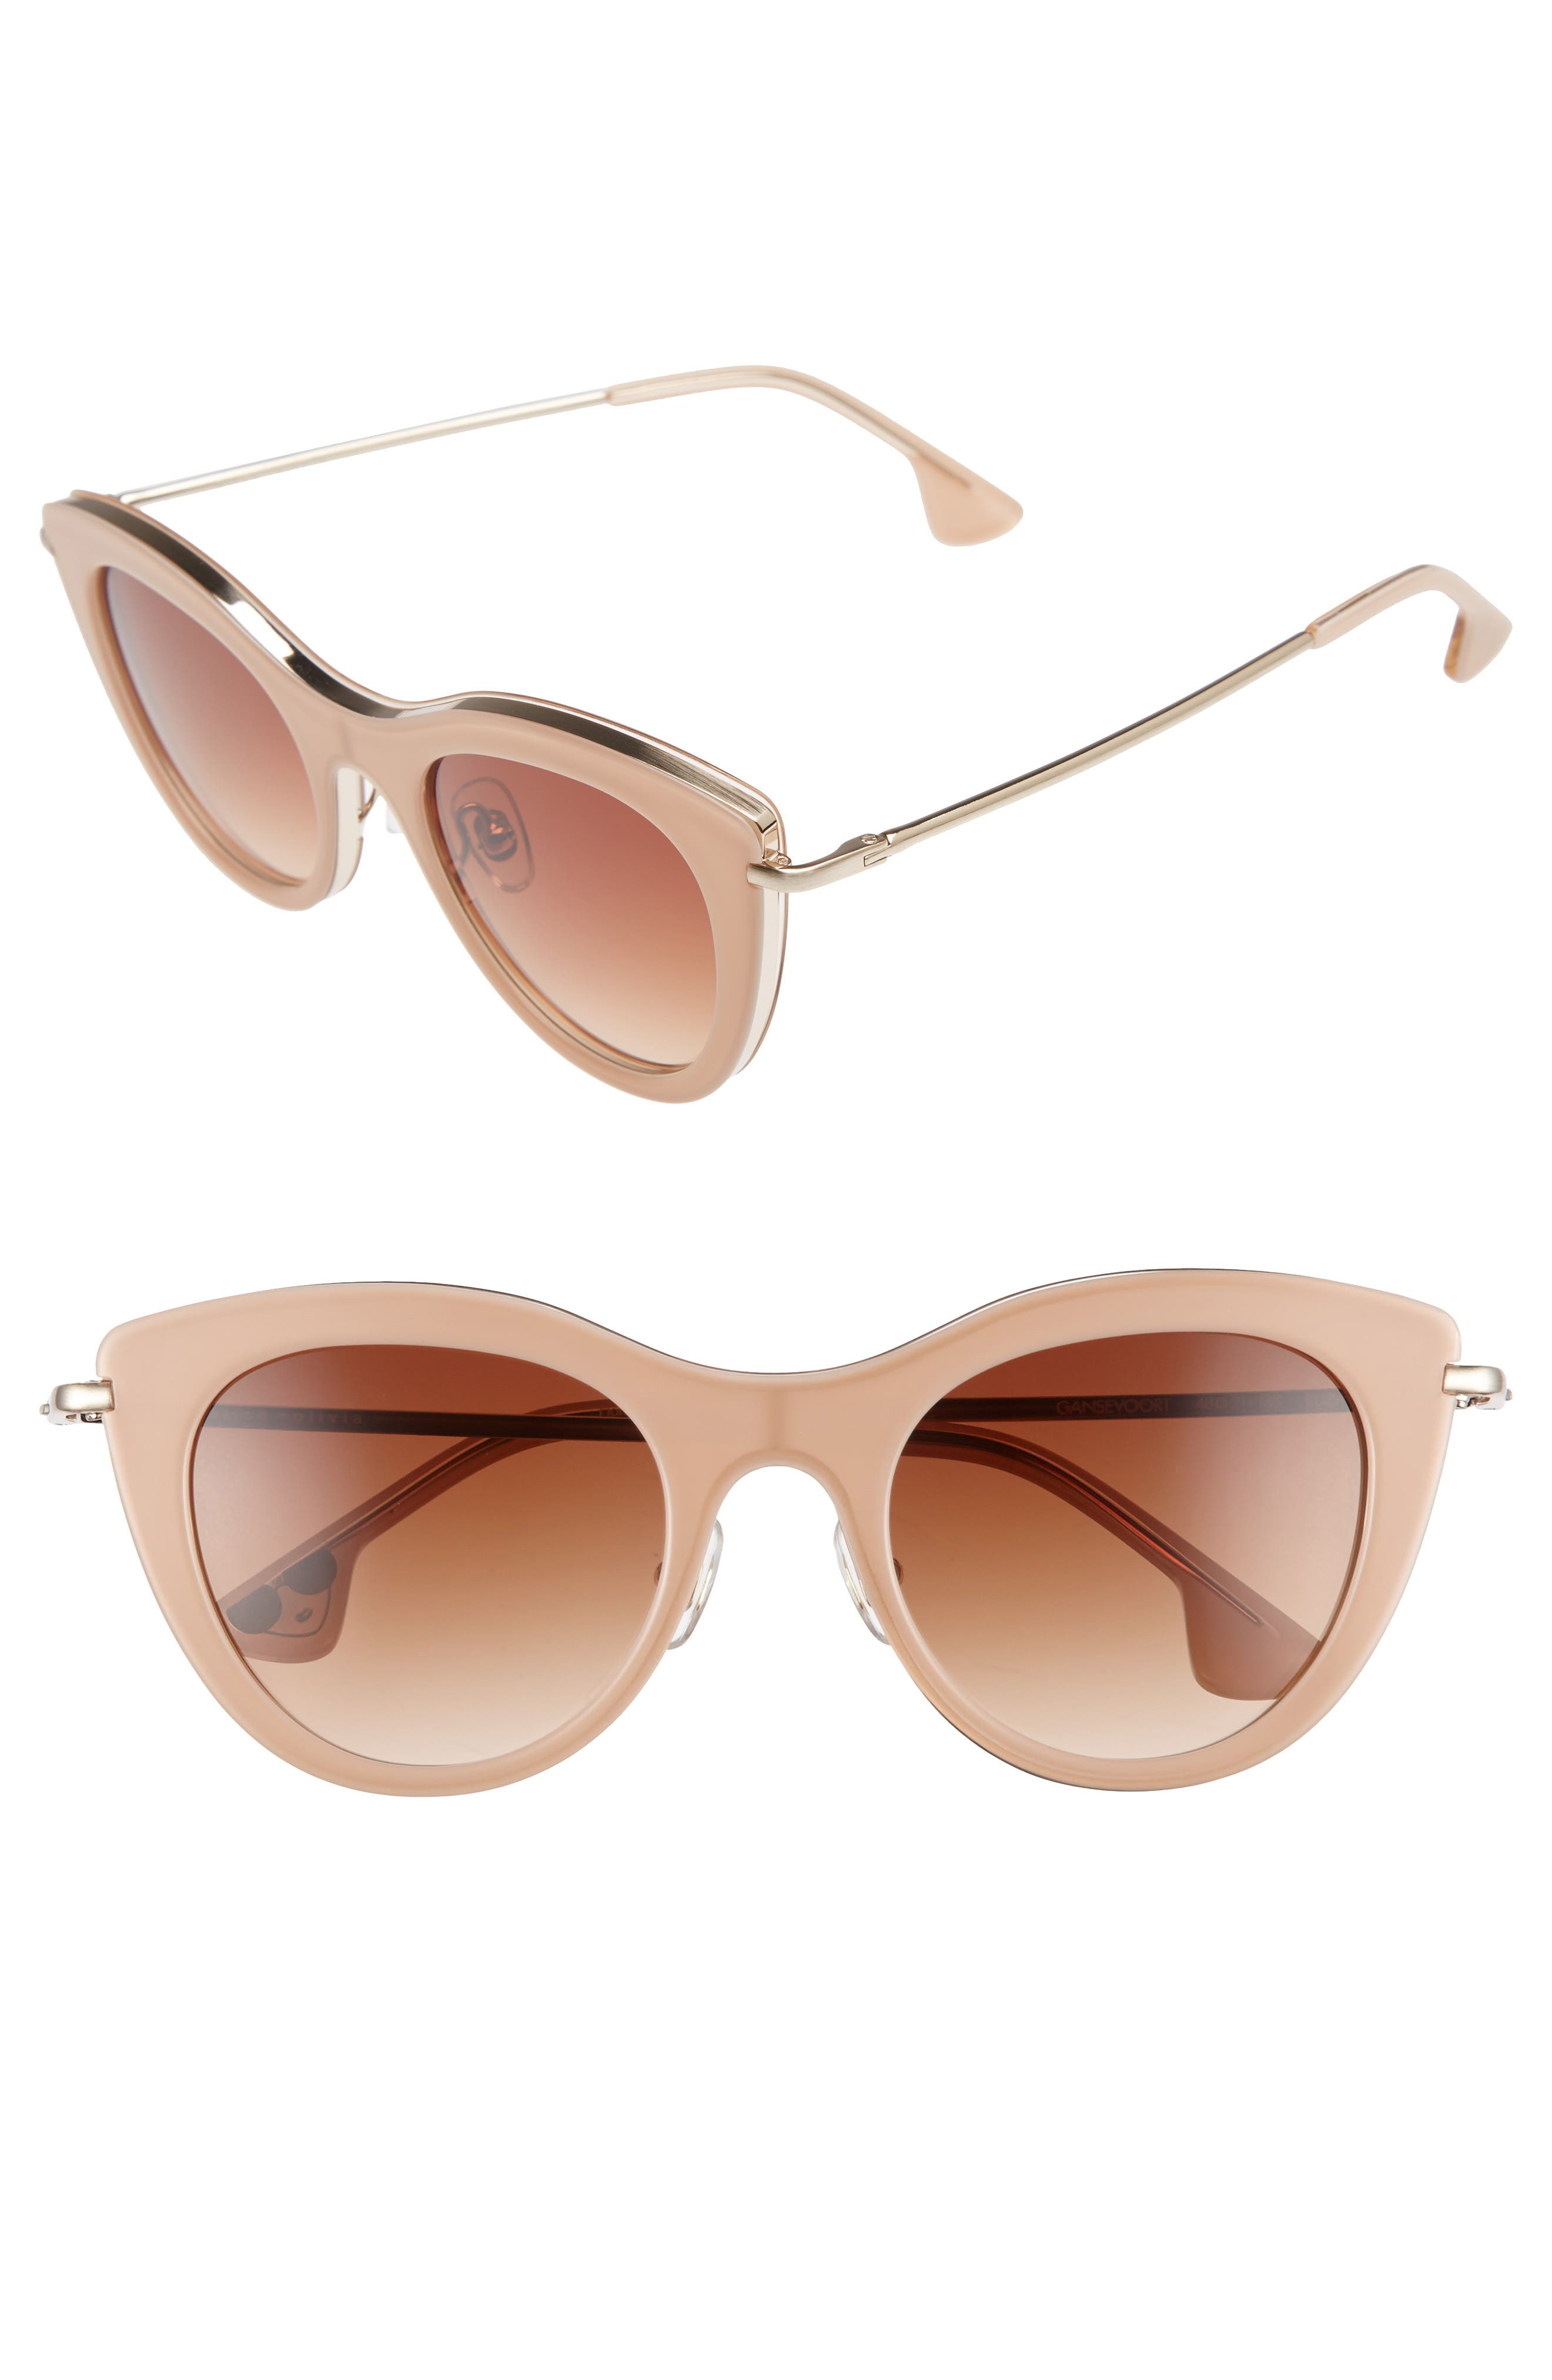 Main Image - Alice + Olivia Gansevoort 48mm Special Fit Cat Eye Sunglasses